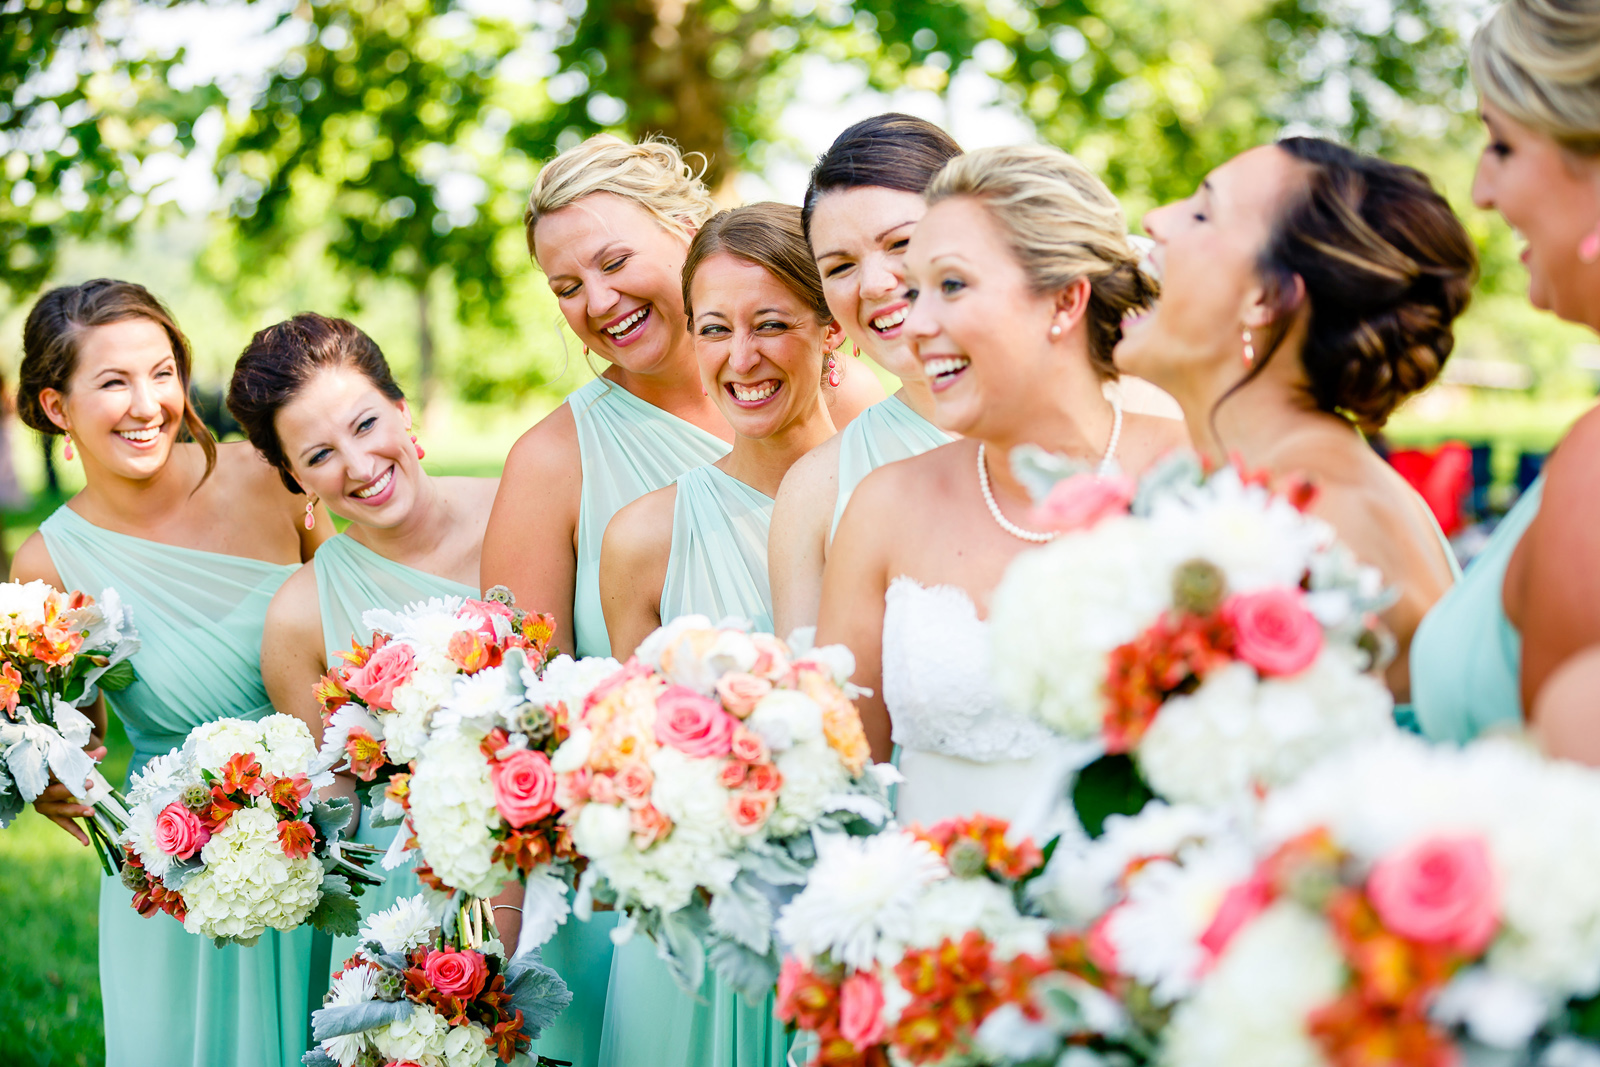 Forest Park Wedding Party Photos with St. Louis Wedding Photographers by Oldani Photography 2.jpg